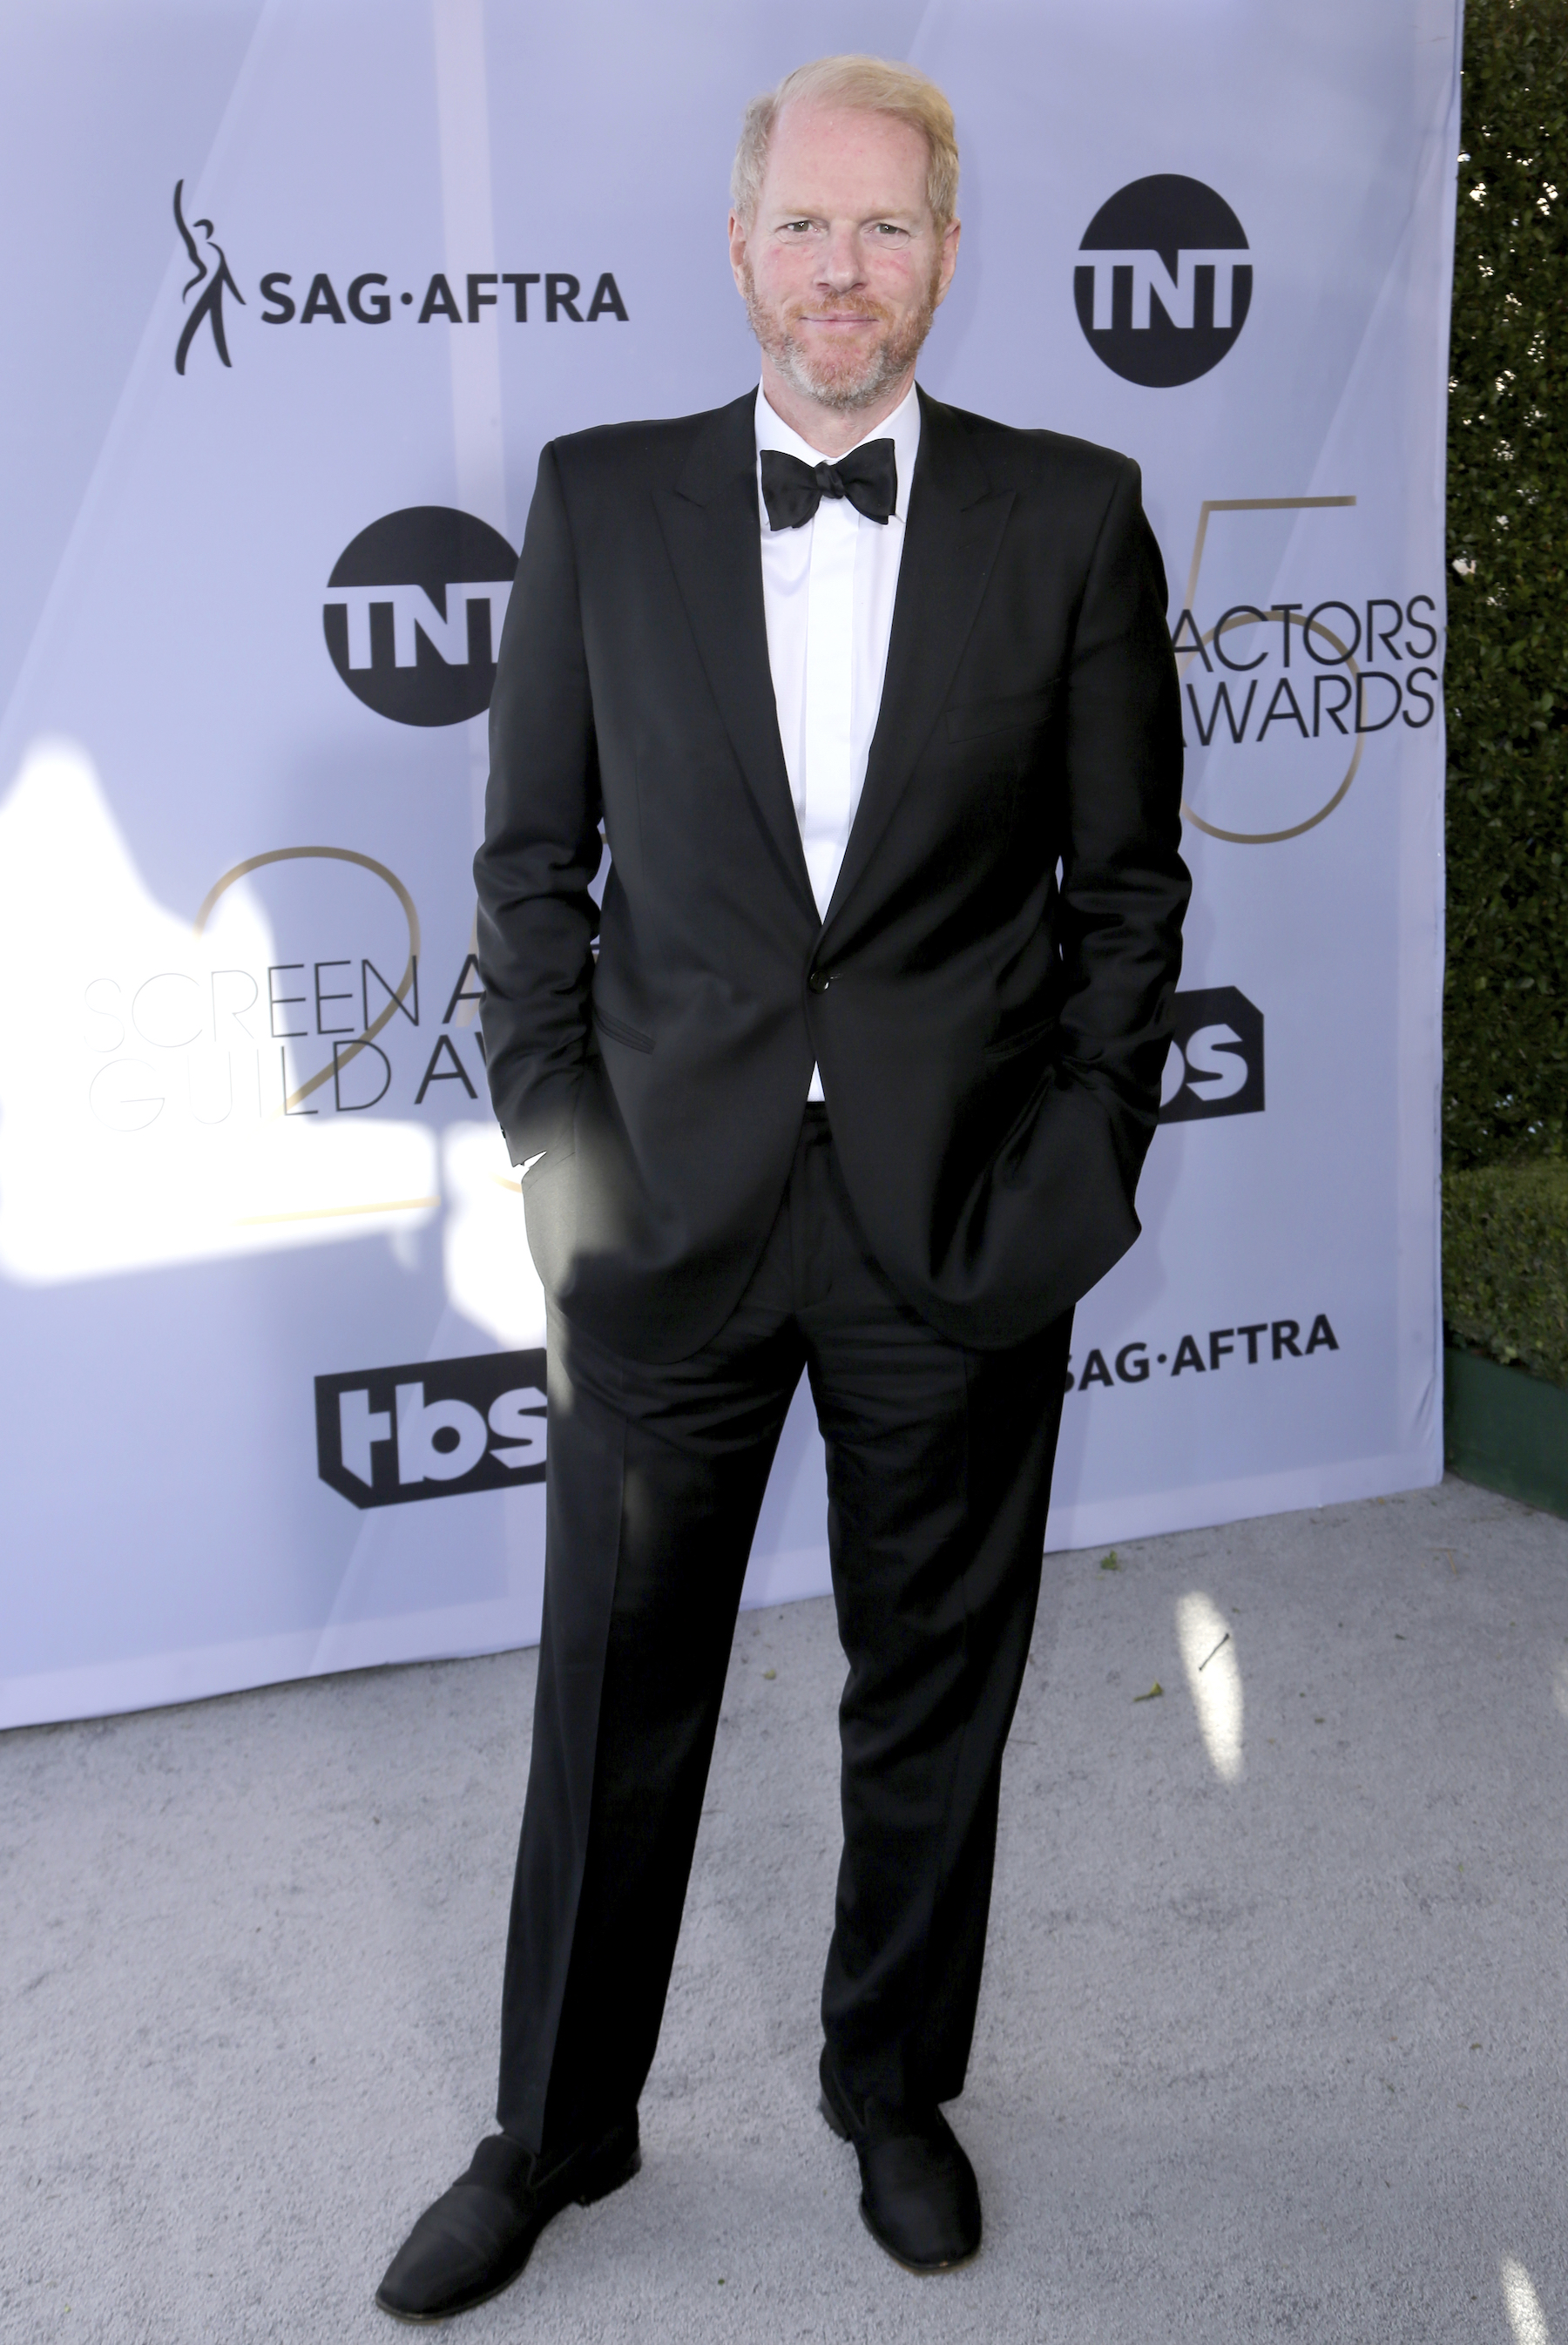 <div class='meta'><div class='origin-logo' data-origin='AP'></div><span class='caption-text' data-credit='Willy Sanjuan/Invision/AP'>Noah Emmerich arrives at the 25th annual Screen Actors Guild Awards at the Shrine Auditorium & Expo Hall on Sunday, Jan. 27, 2019, in Los Angeles.</span></div>